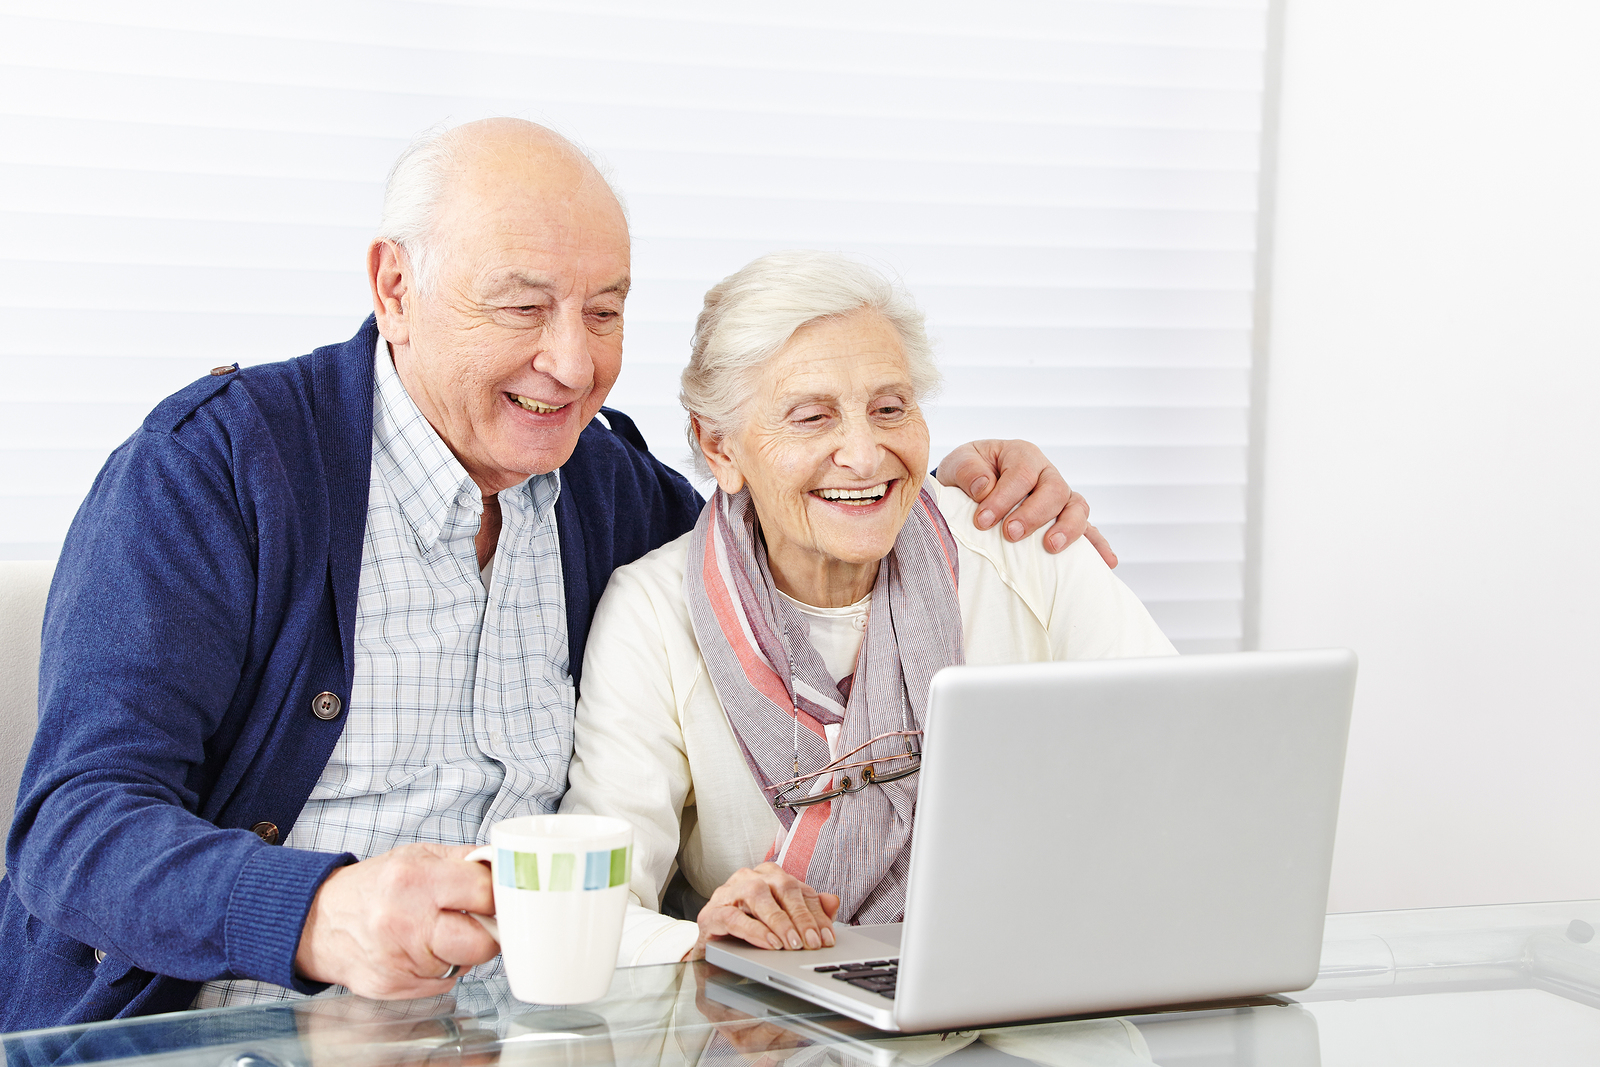 how senior citizens can improve their quality of life Virtual reality implementations are helping senior citizens improve their quality of life through maplewood senior living's new center for aging innovation and technology.